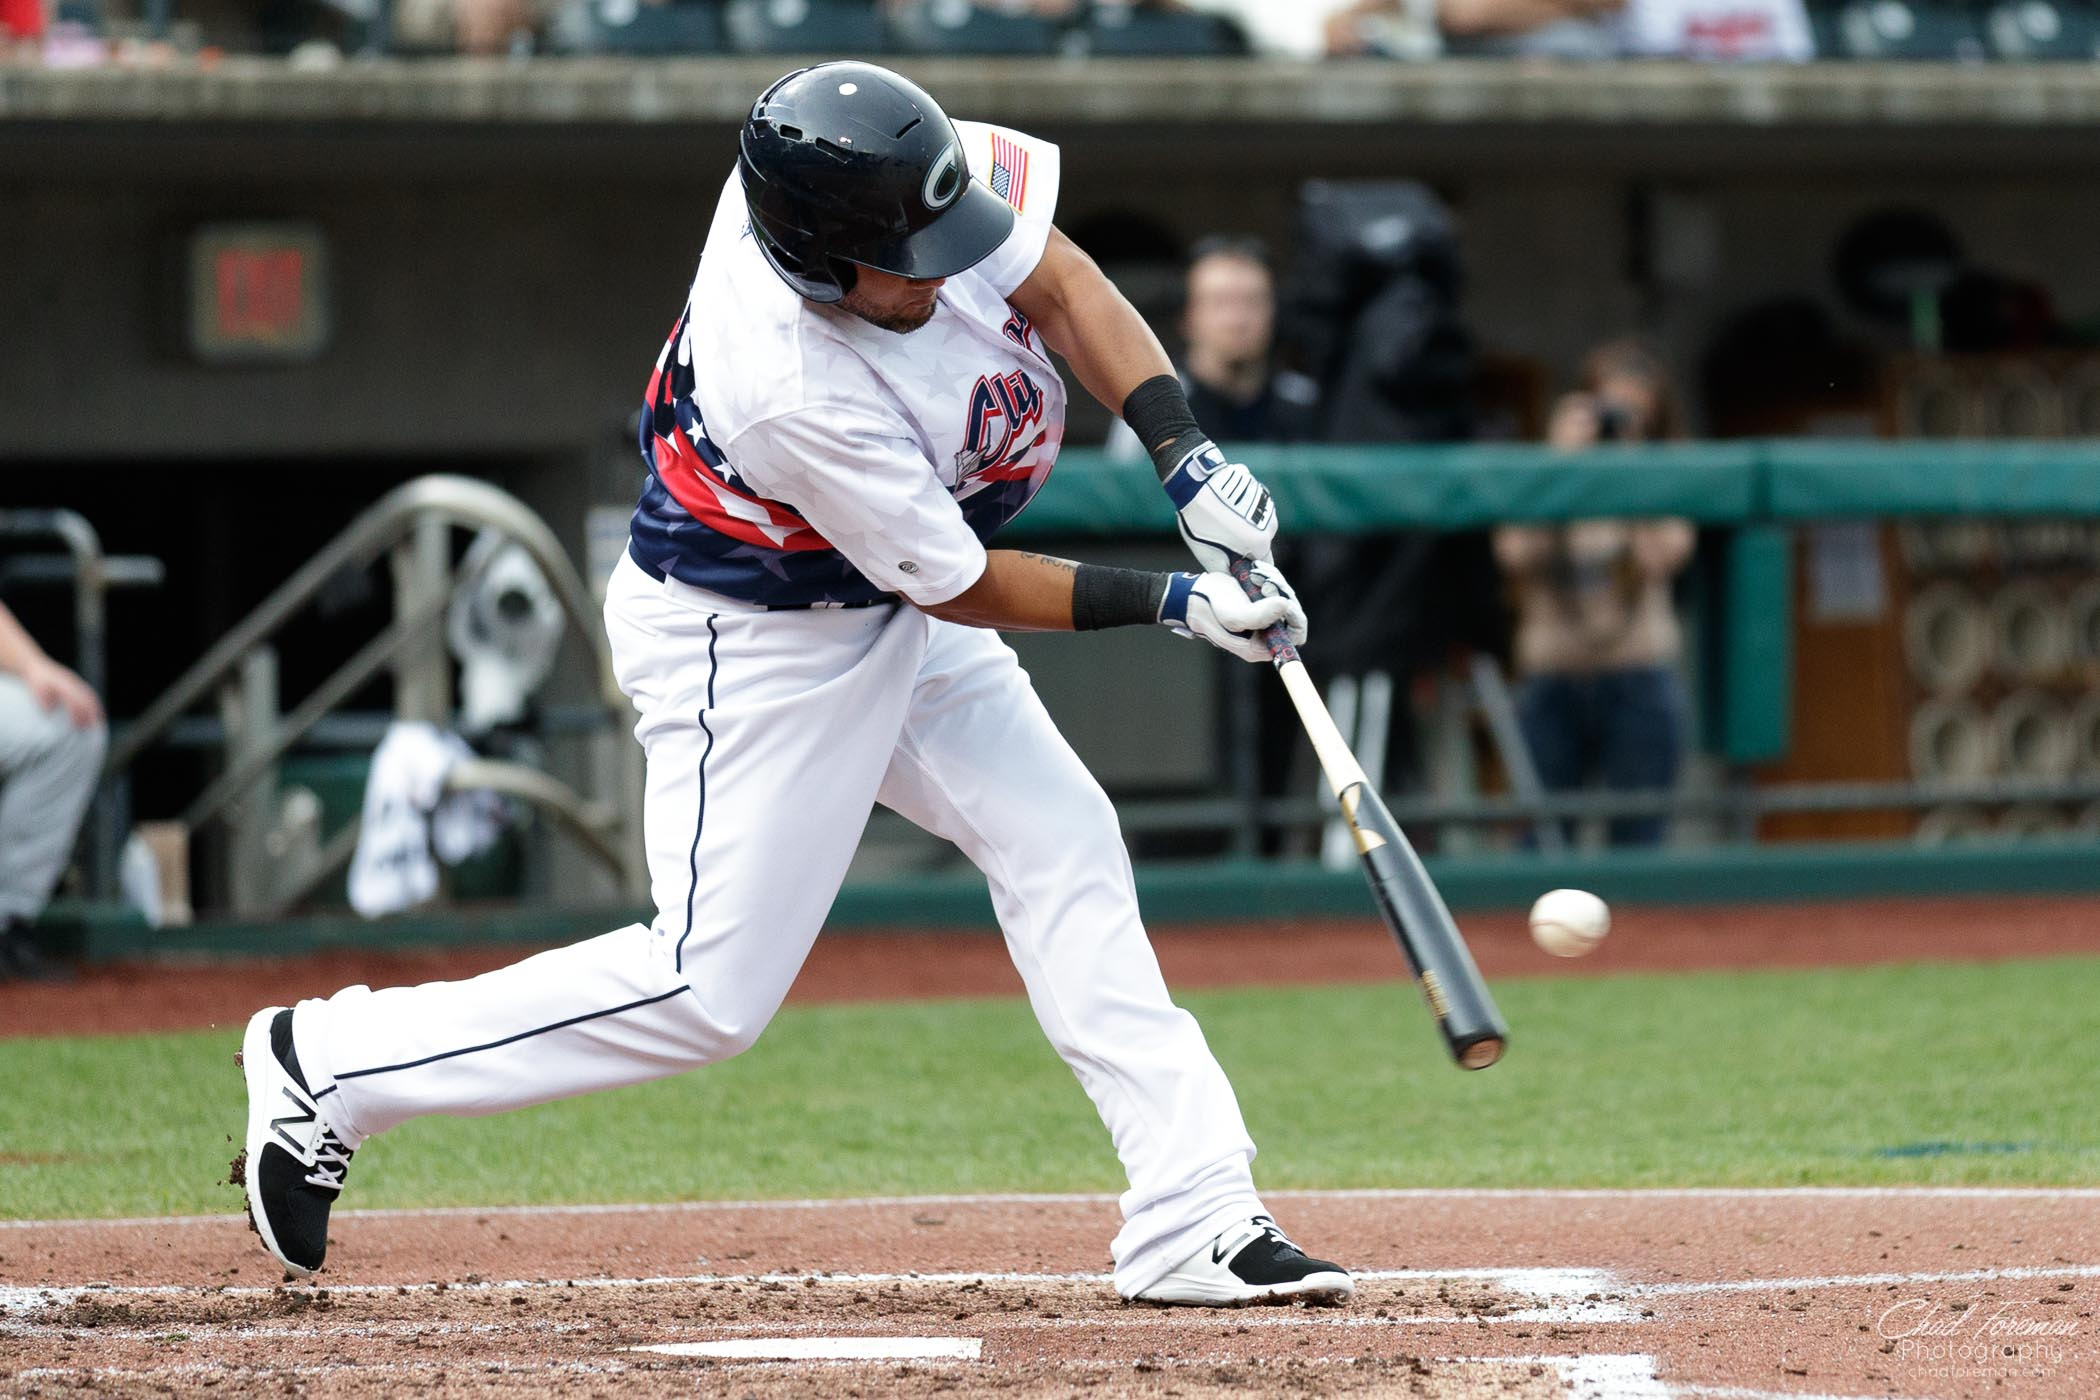 sports photography baseball Columbus clippers batter hit